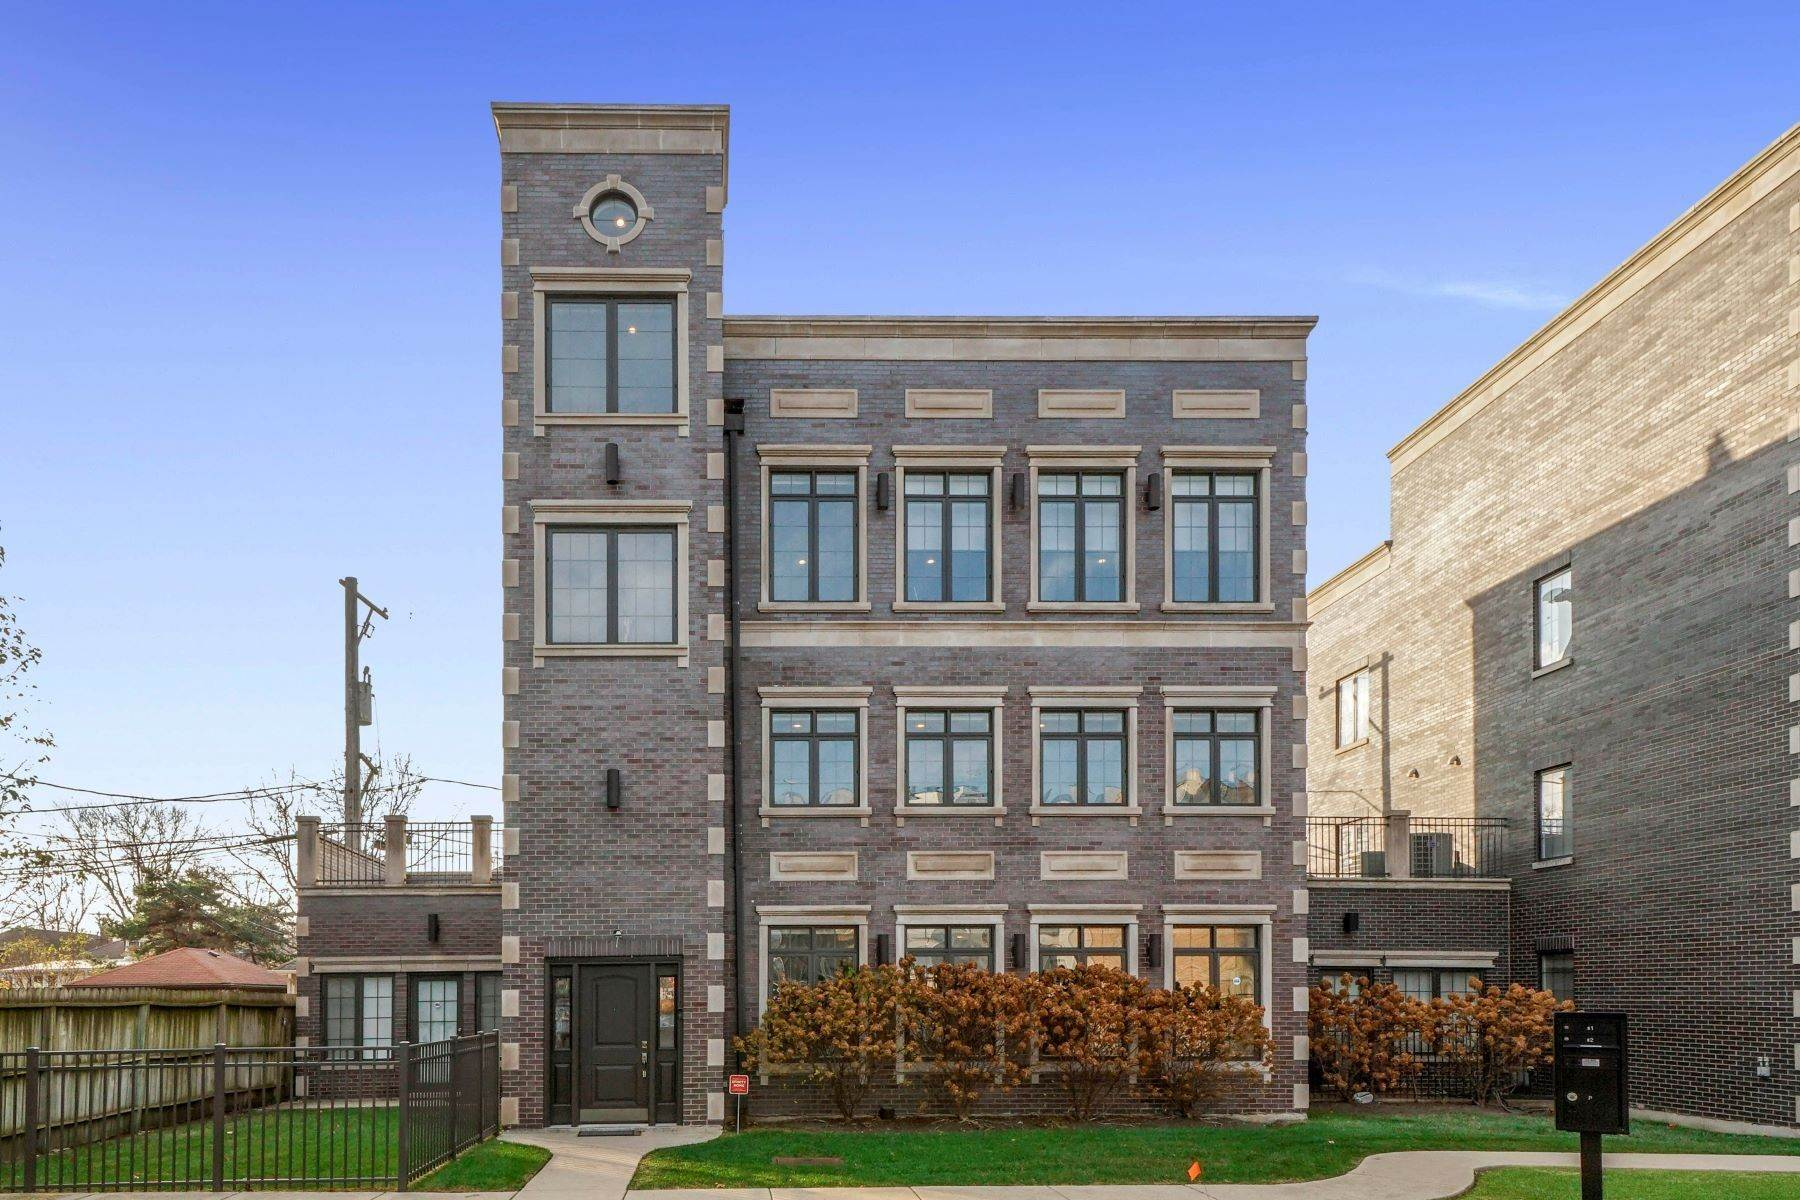 Single Family Homes for Sale at Tri-level Single Family Home in Andersonville 5954 N Paulina Street Chicago, Illinois 60660 United States